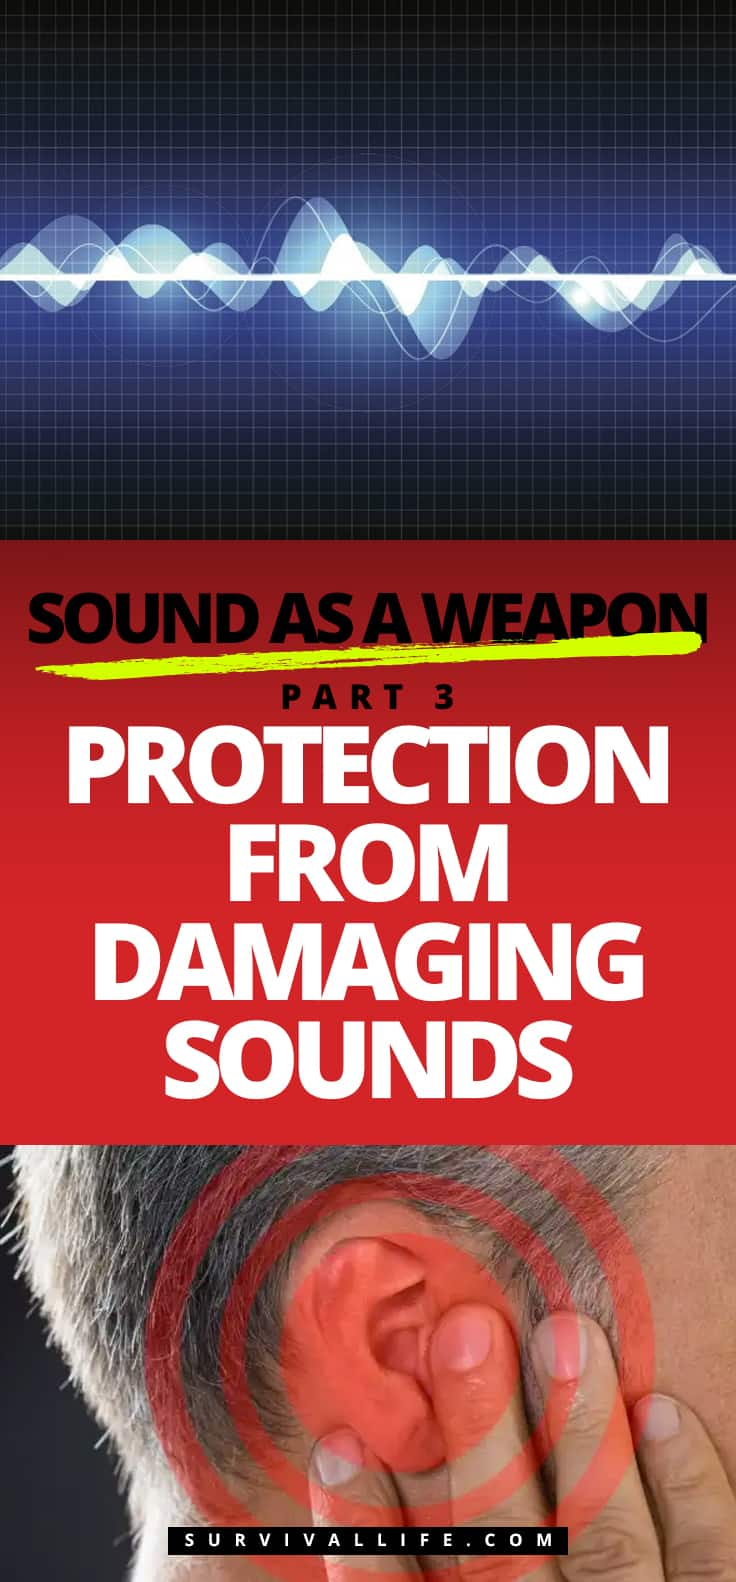 Sound as a Weapon Part 3: Protection from Damaging Sounds